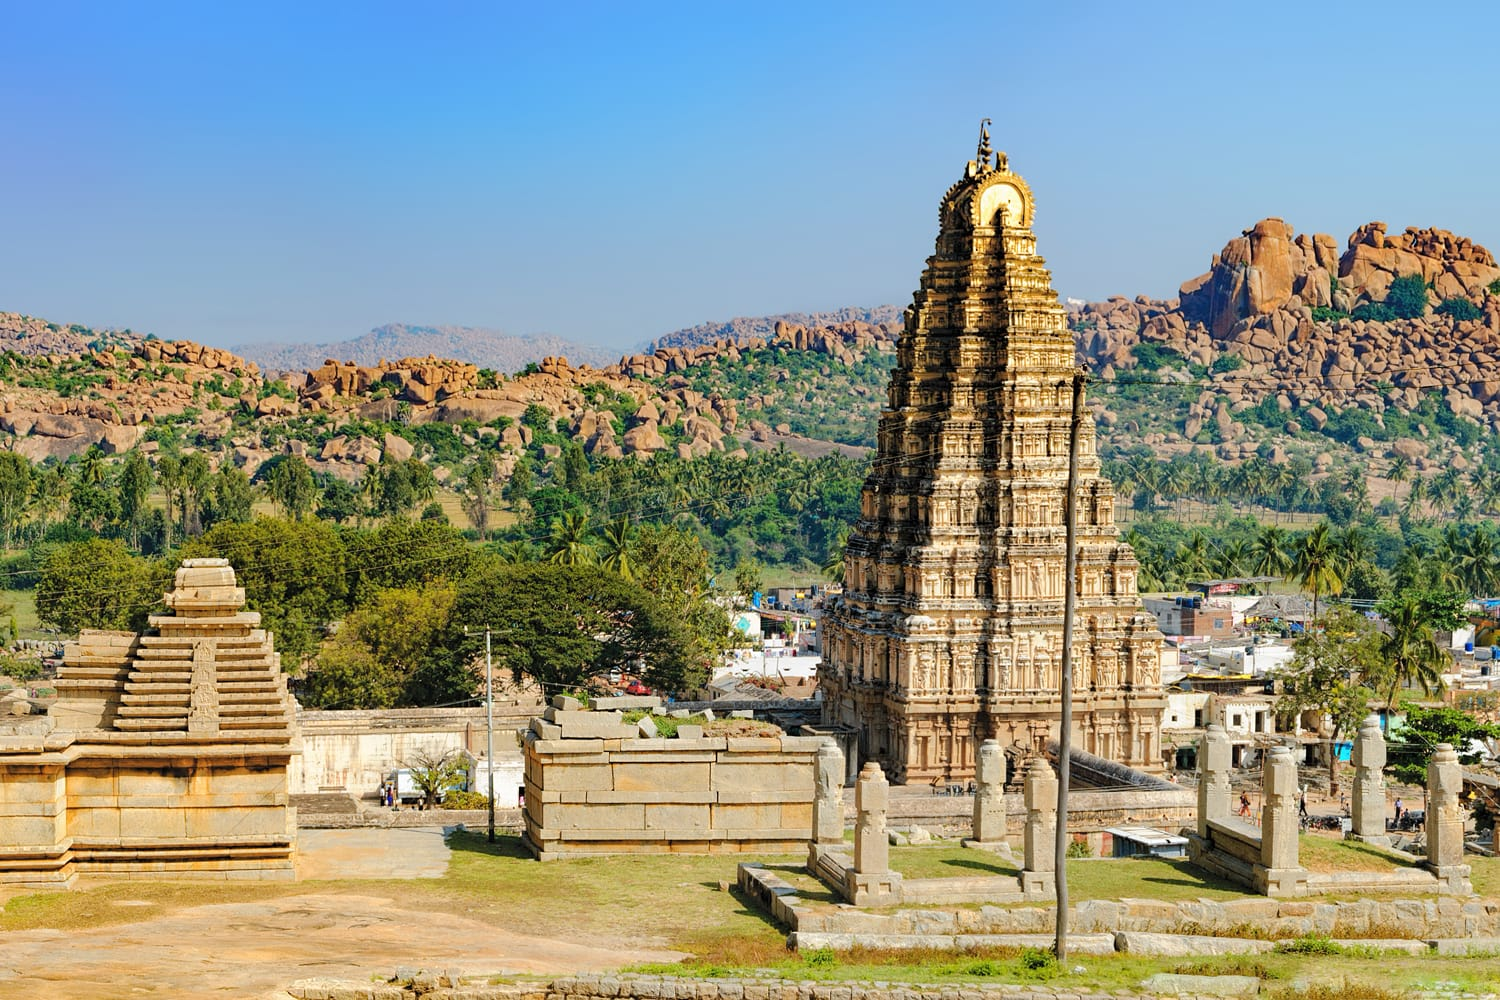 Virupaksha Temple, located in the ruins of ancient city Vijayanagar at Hampi, India